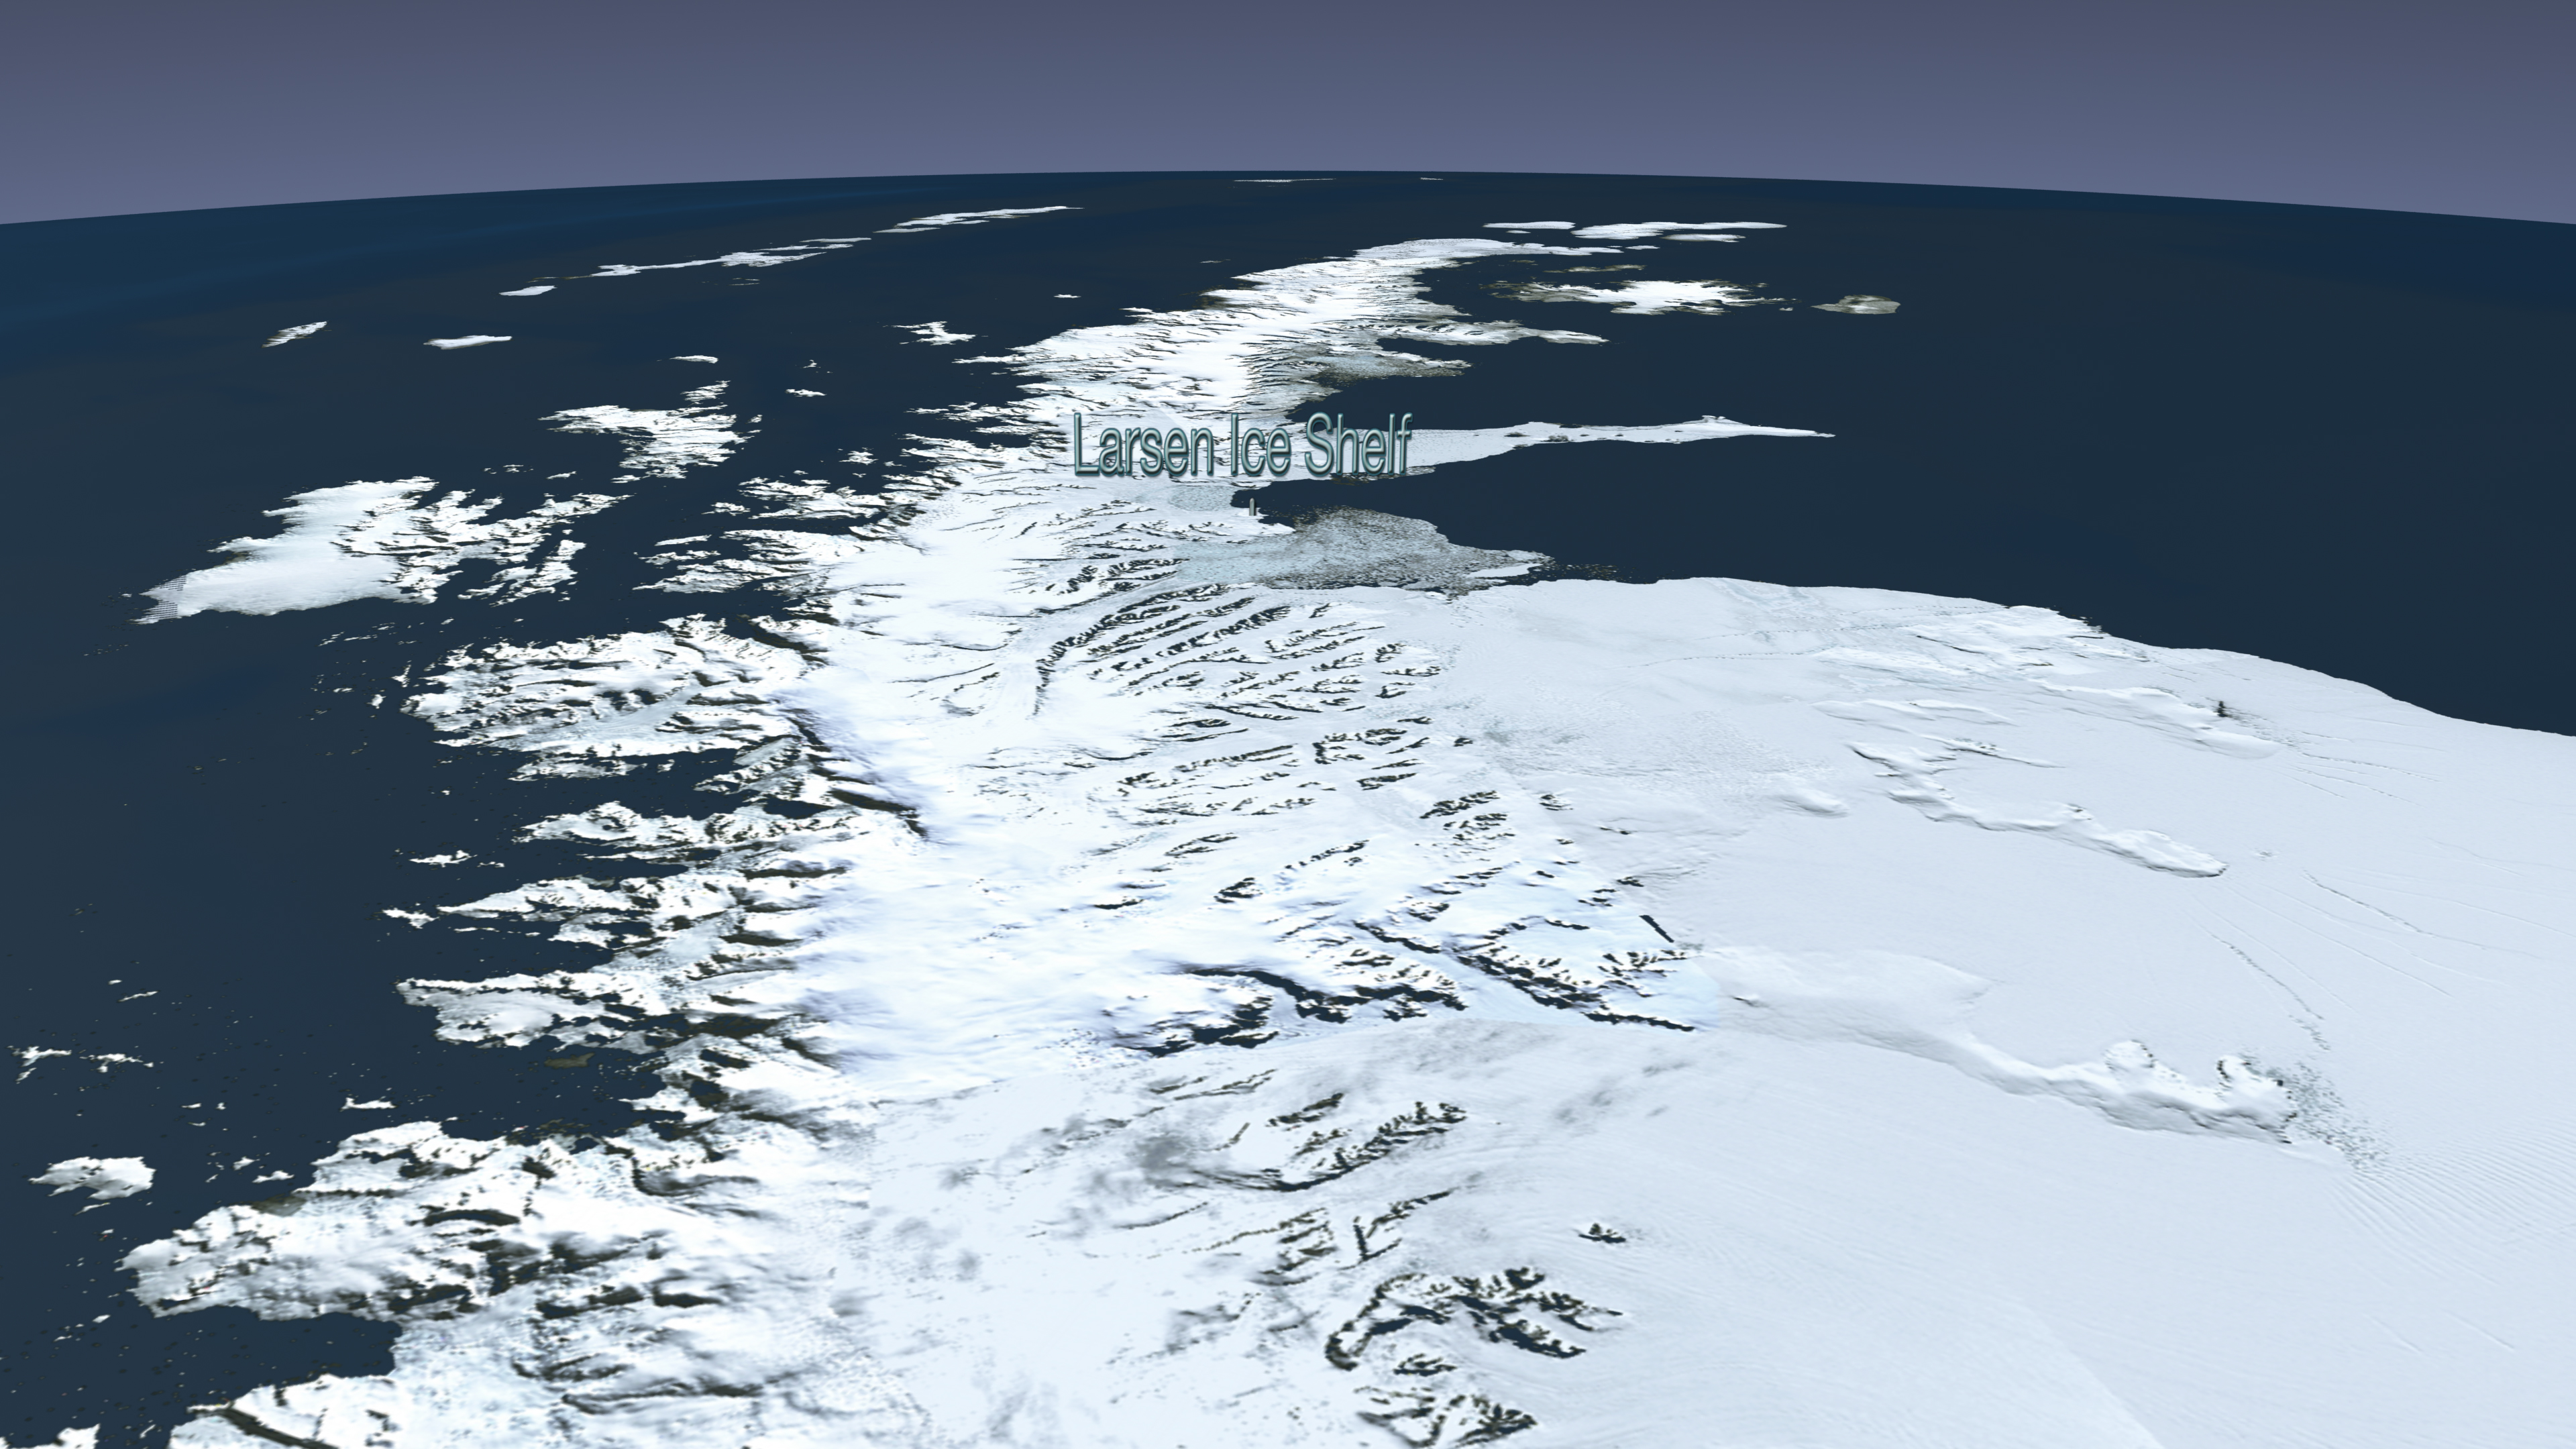 The Larsen B ice shelf began disintegrating around Jan. 31, 2002, and eventually collapsed into the Weddell Sea. University of Michigan researchers have devised a new model of iceberg calving that can mirror this event. Credit: NASA